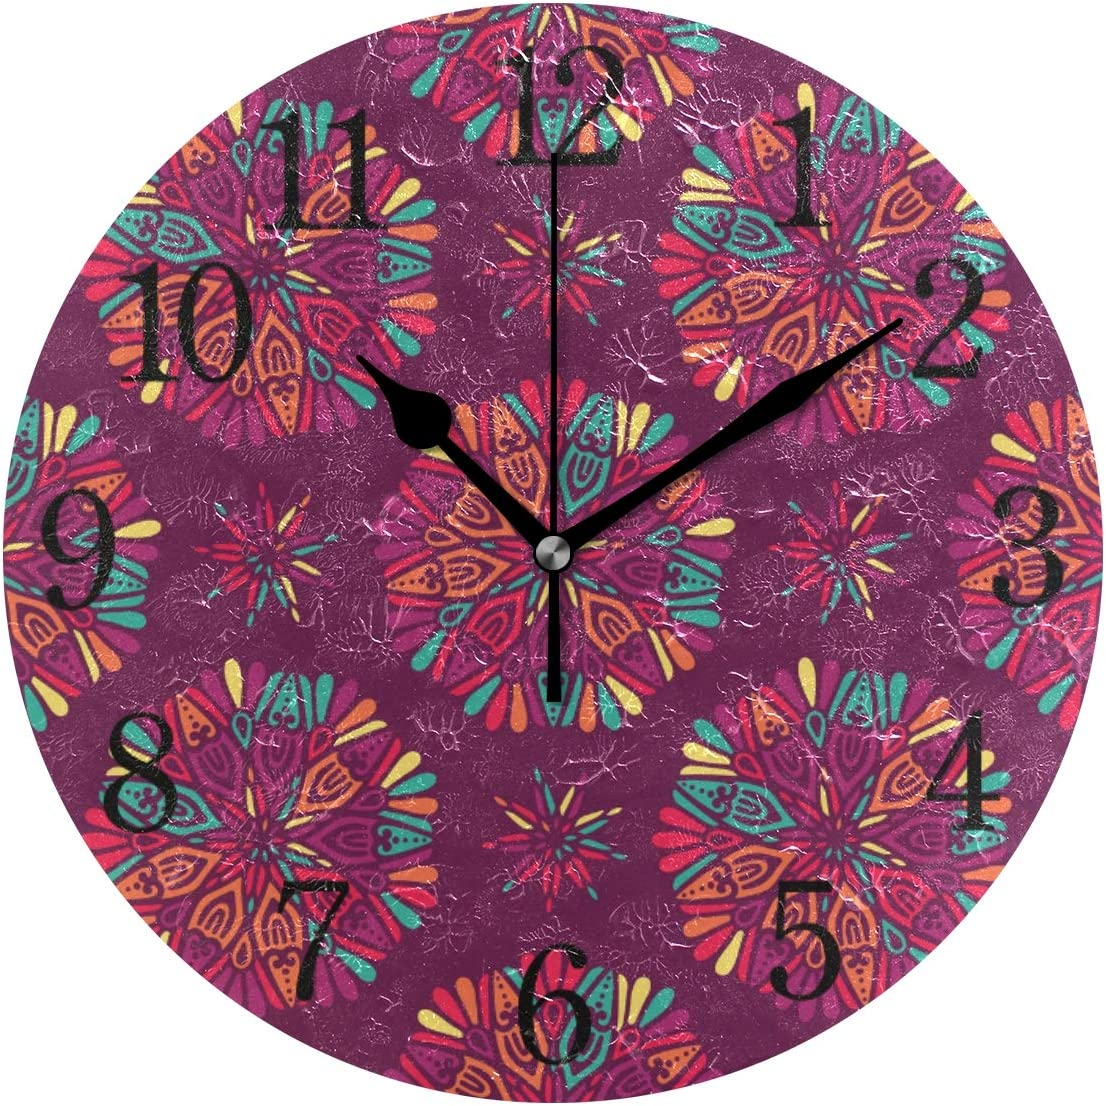 YYYJIA Indian Floral Medallion Vintage 9 Inch Round Acrylic Wall Clock Non Ticking Silent Clocks Art for Home Decor Living Room Kitchen Bedroom Office School